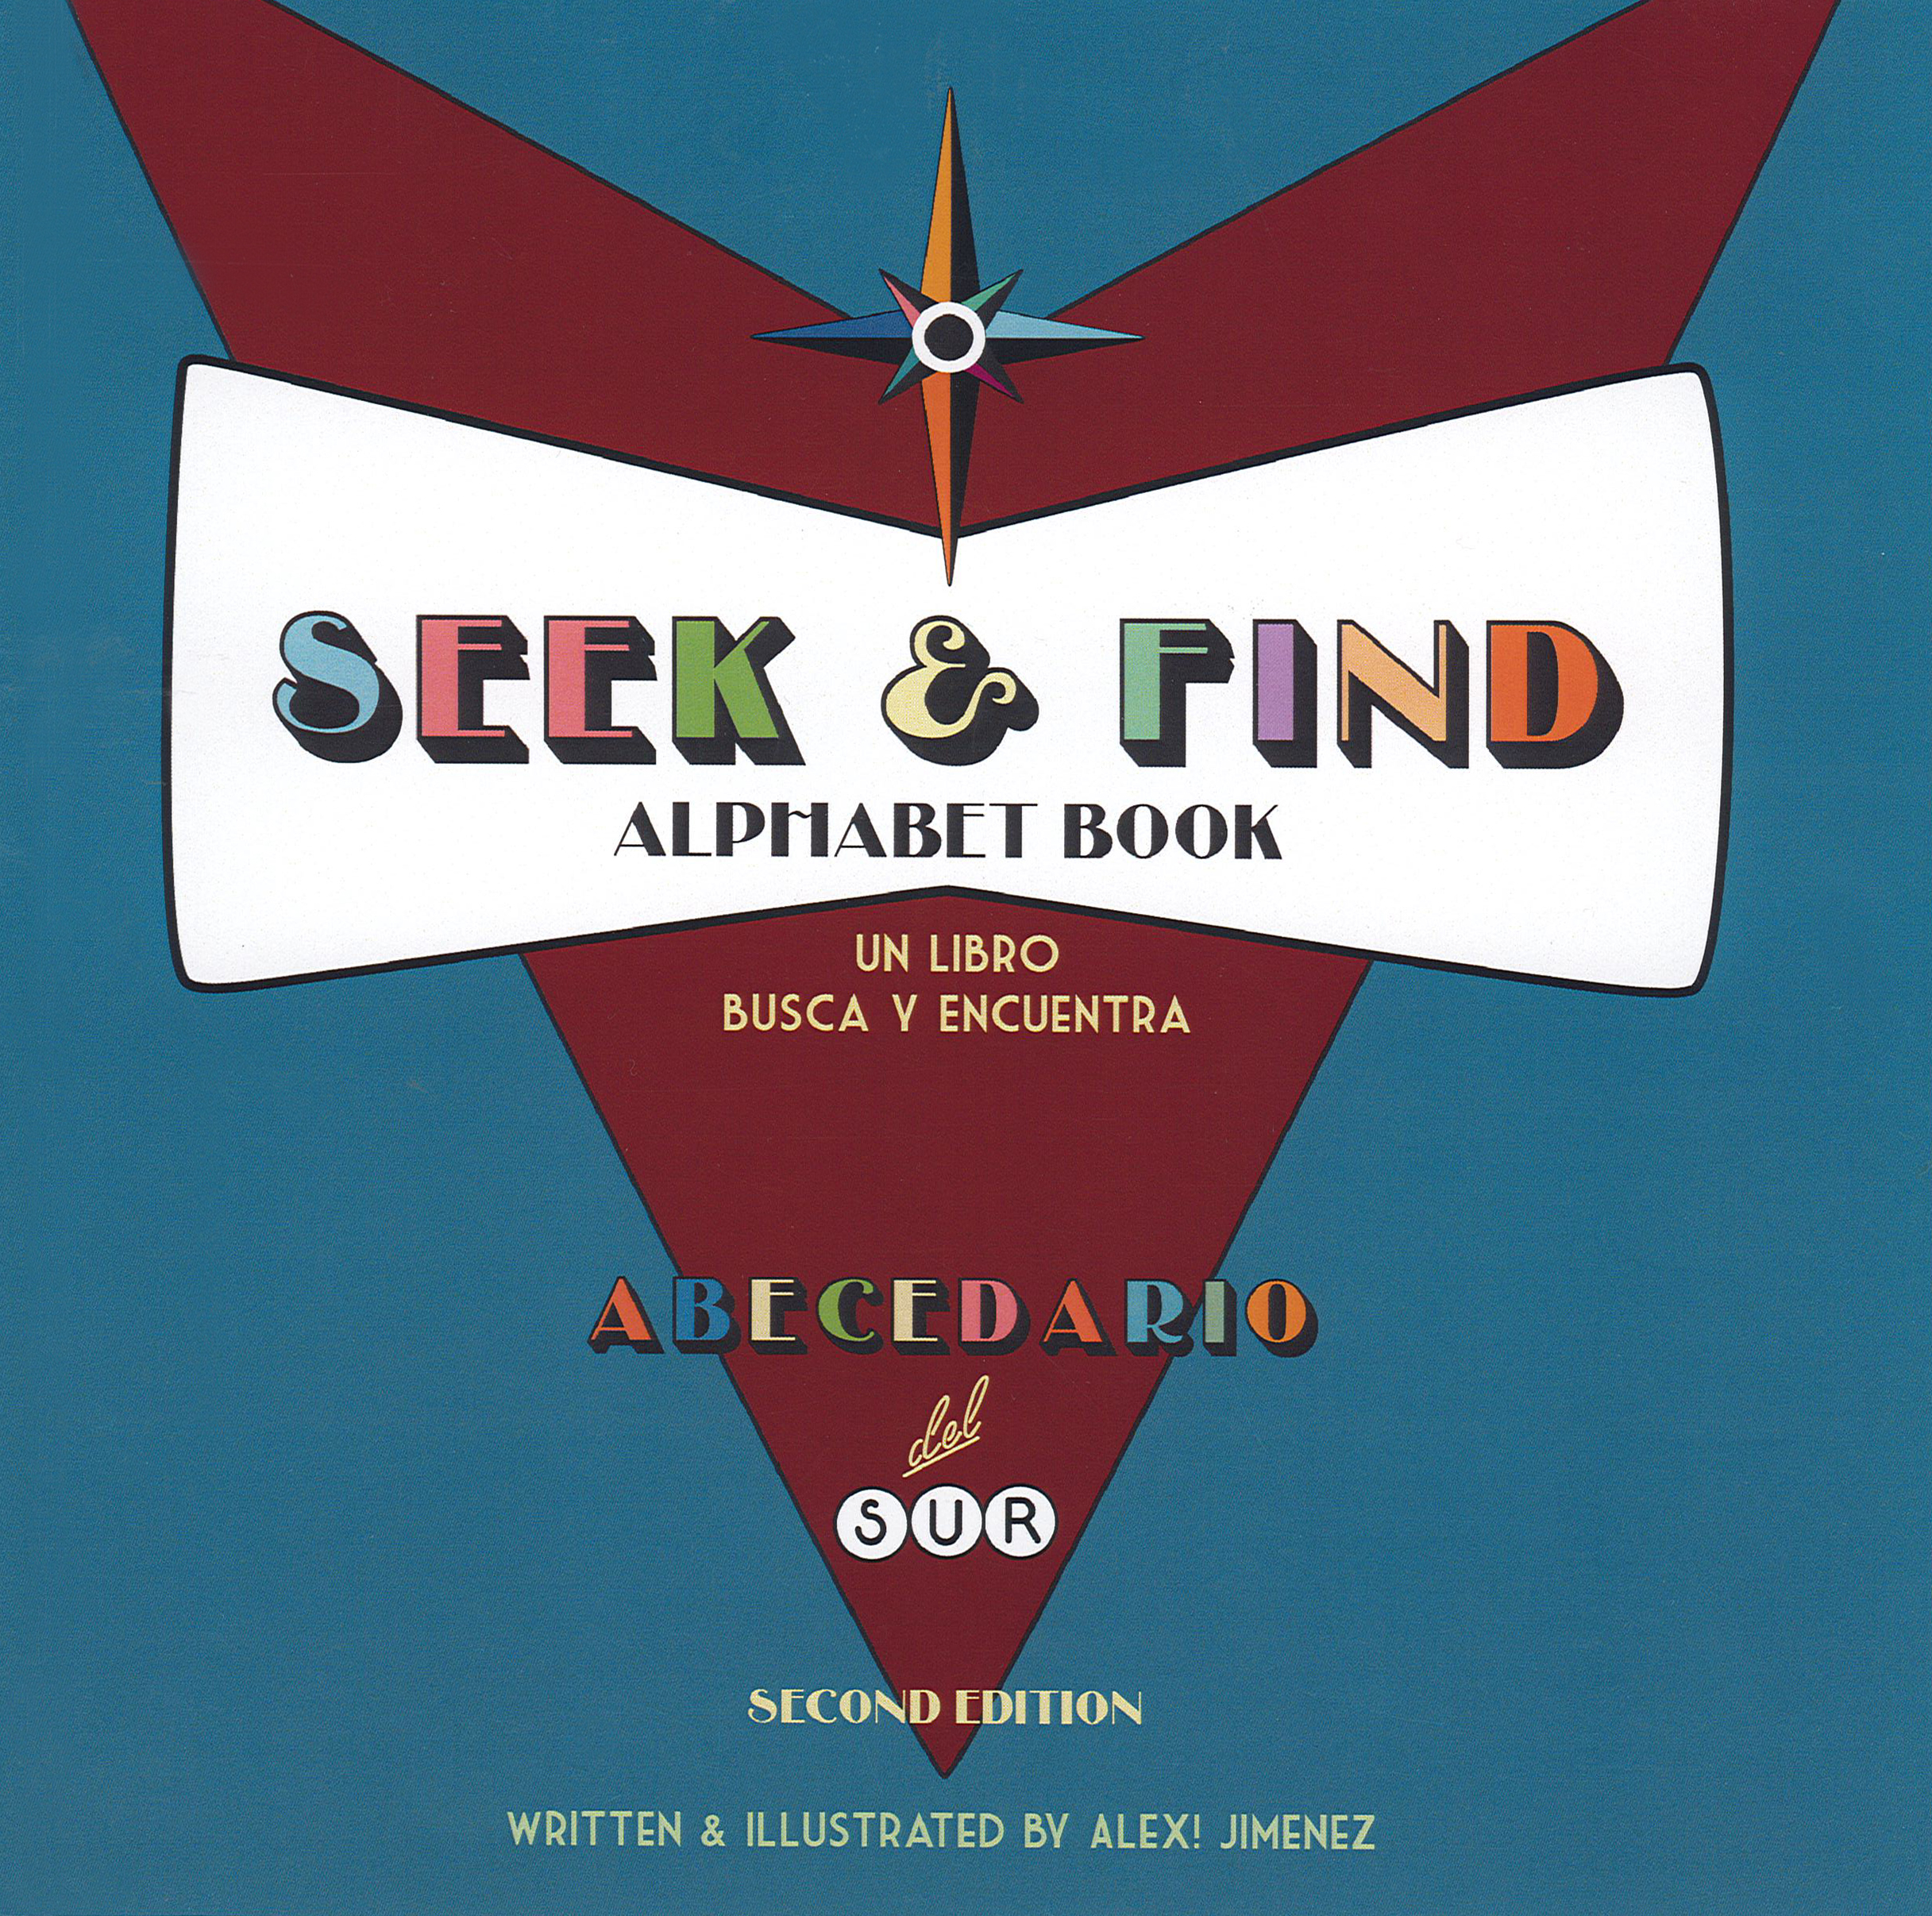 Seek & Find Alphabet Book